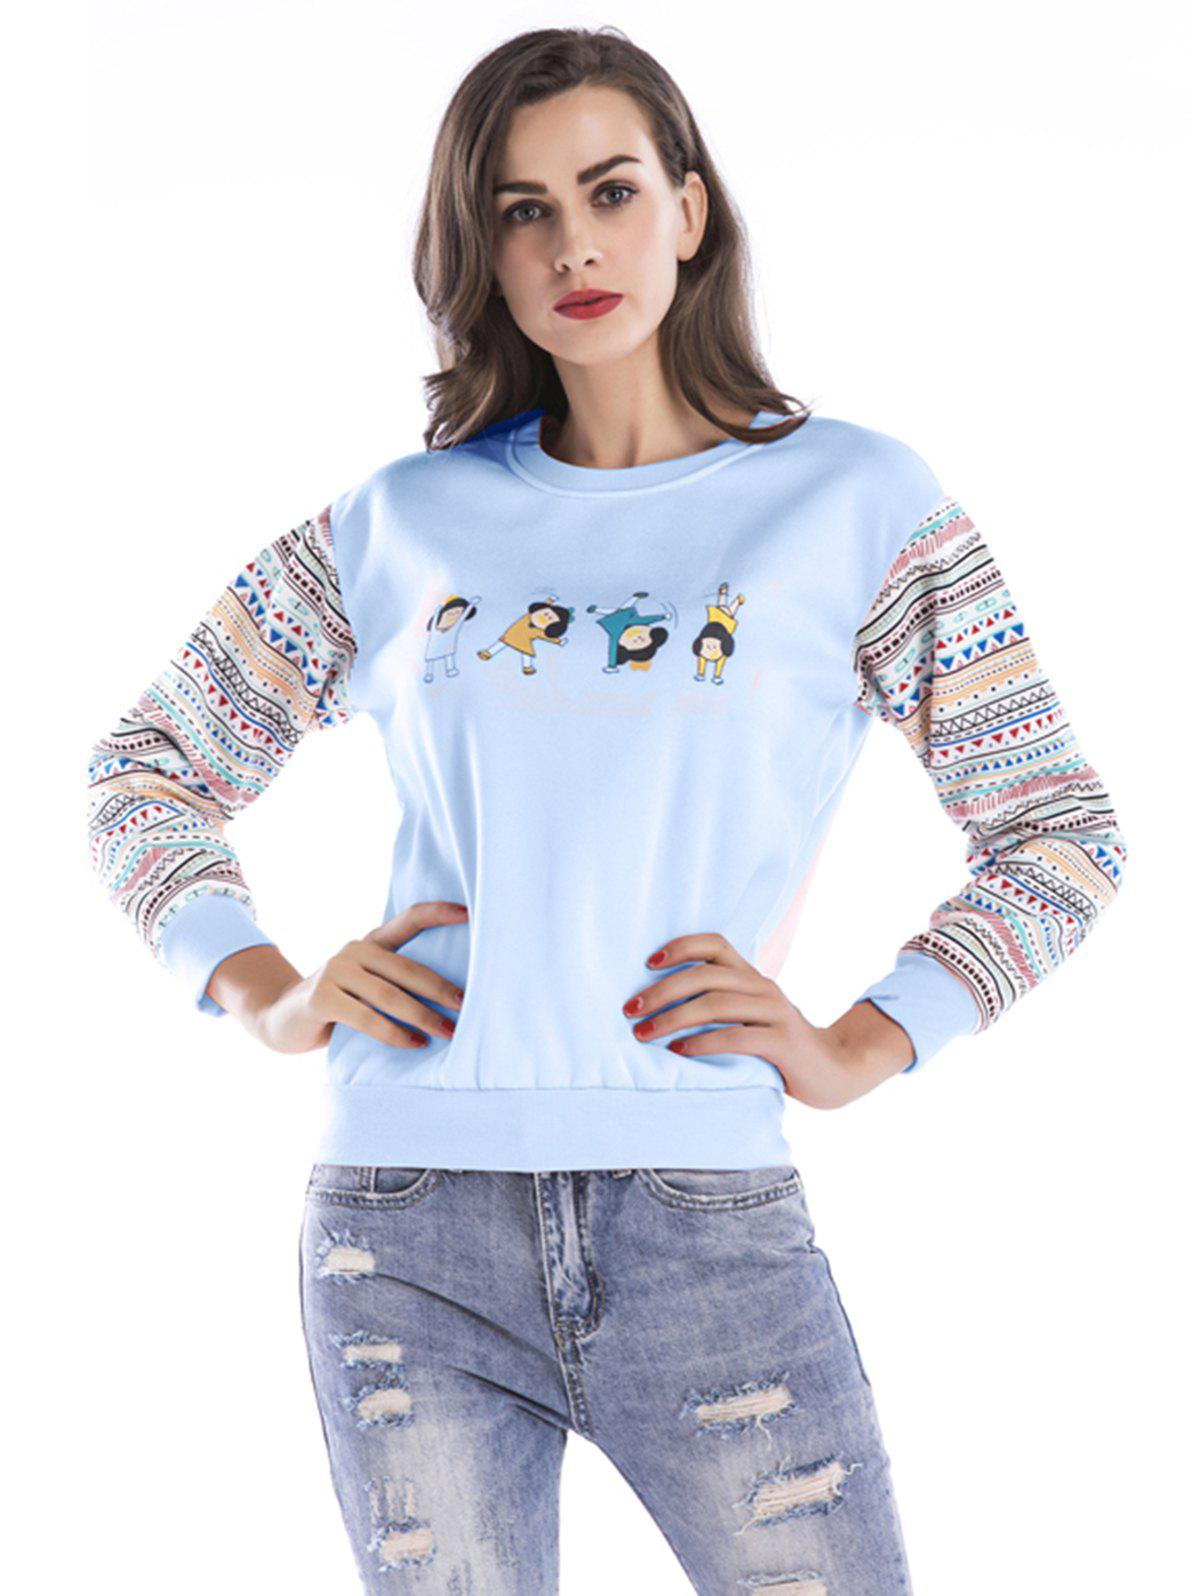 Discount Women Fashion Floral Splice Long Sleeve Blouse Top Pullover Casual Christmas T Shirt